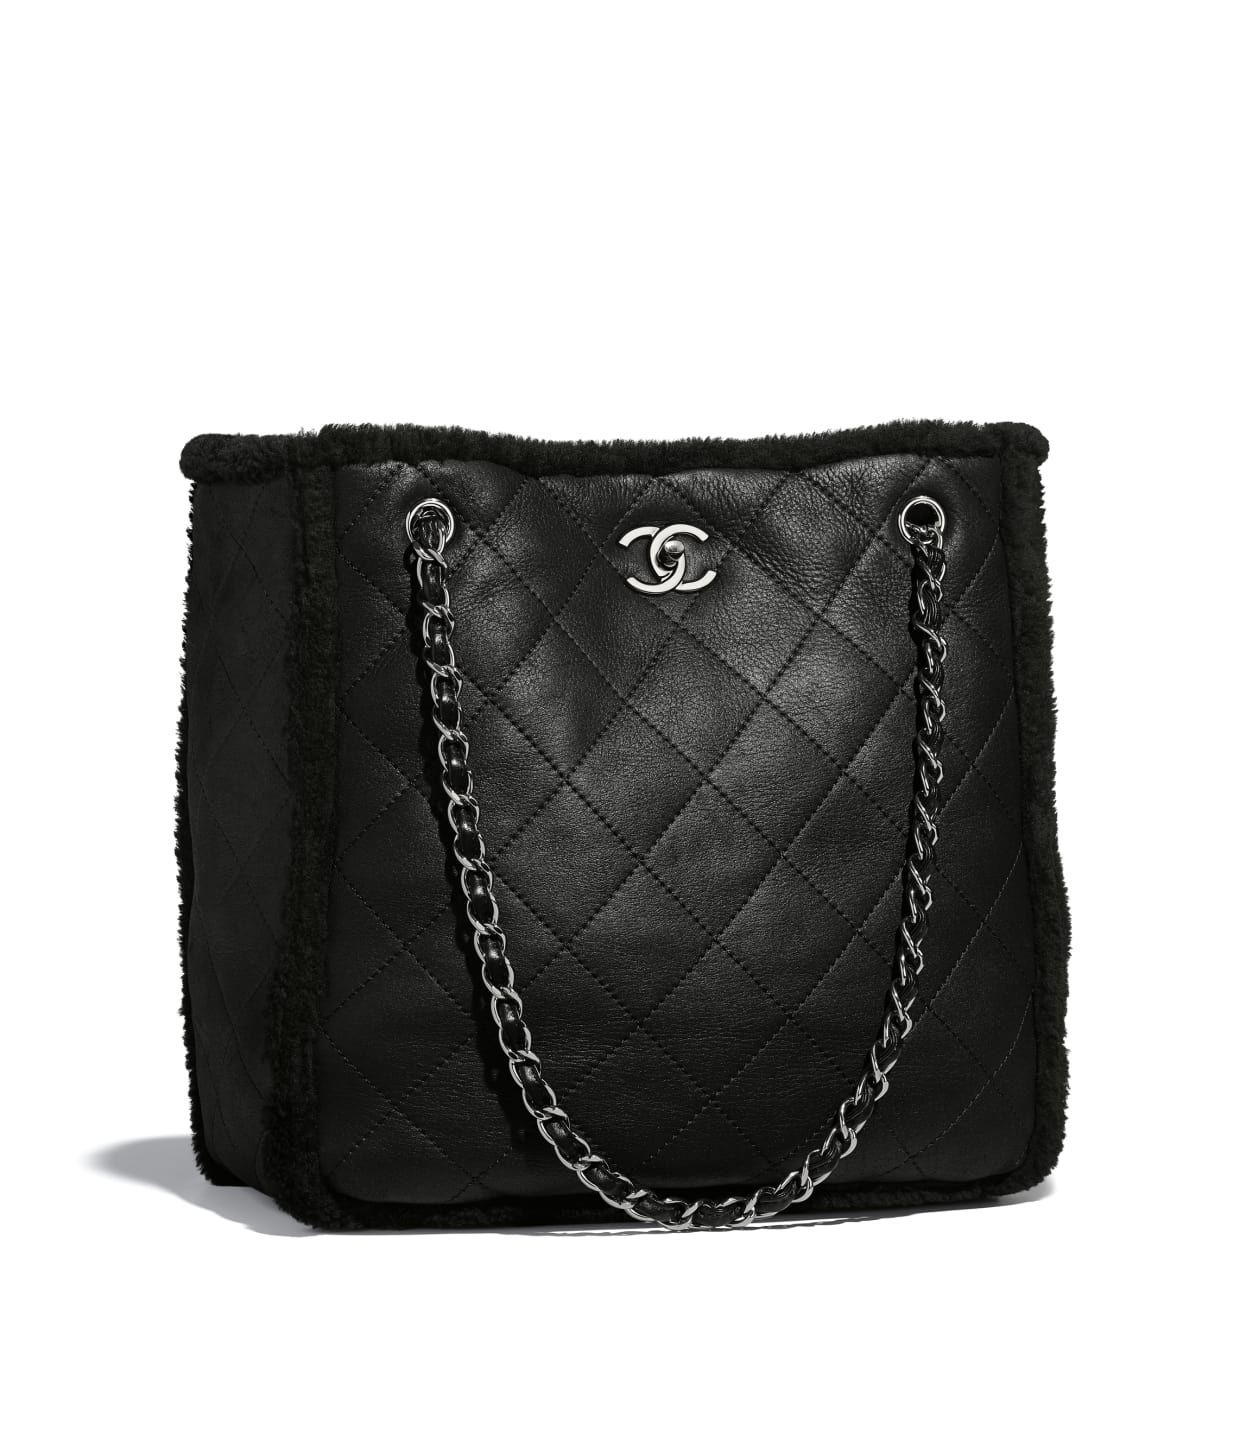 c7f06eececb741 Shearling Lambskin & Ruthenium-Finish Metal Black Large Shopping Bag |  CHANEL